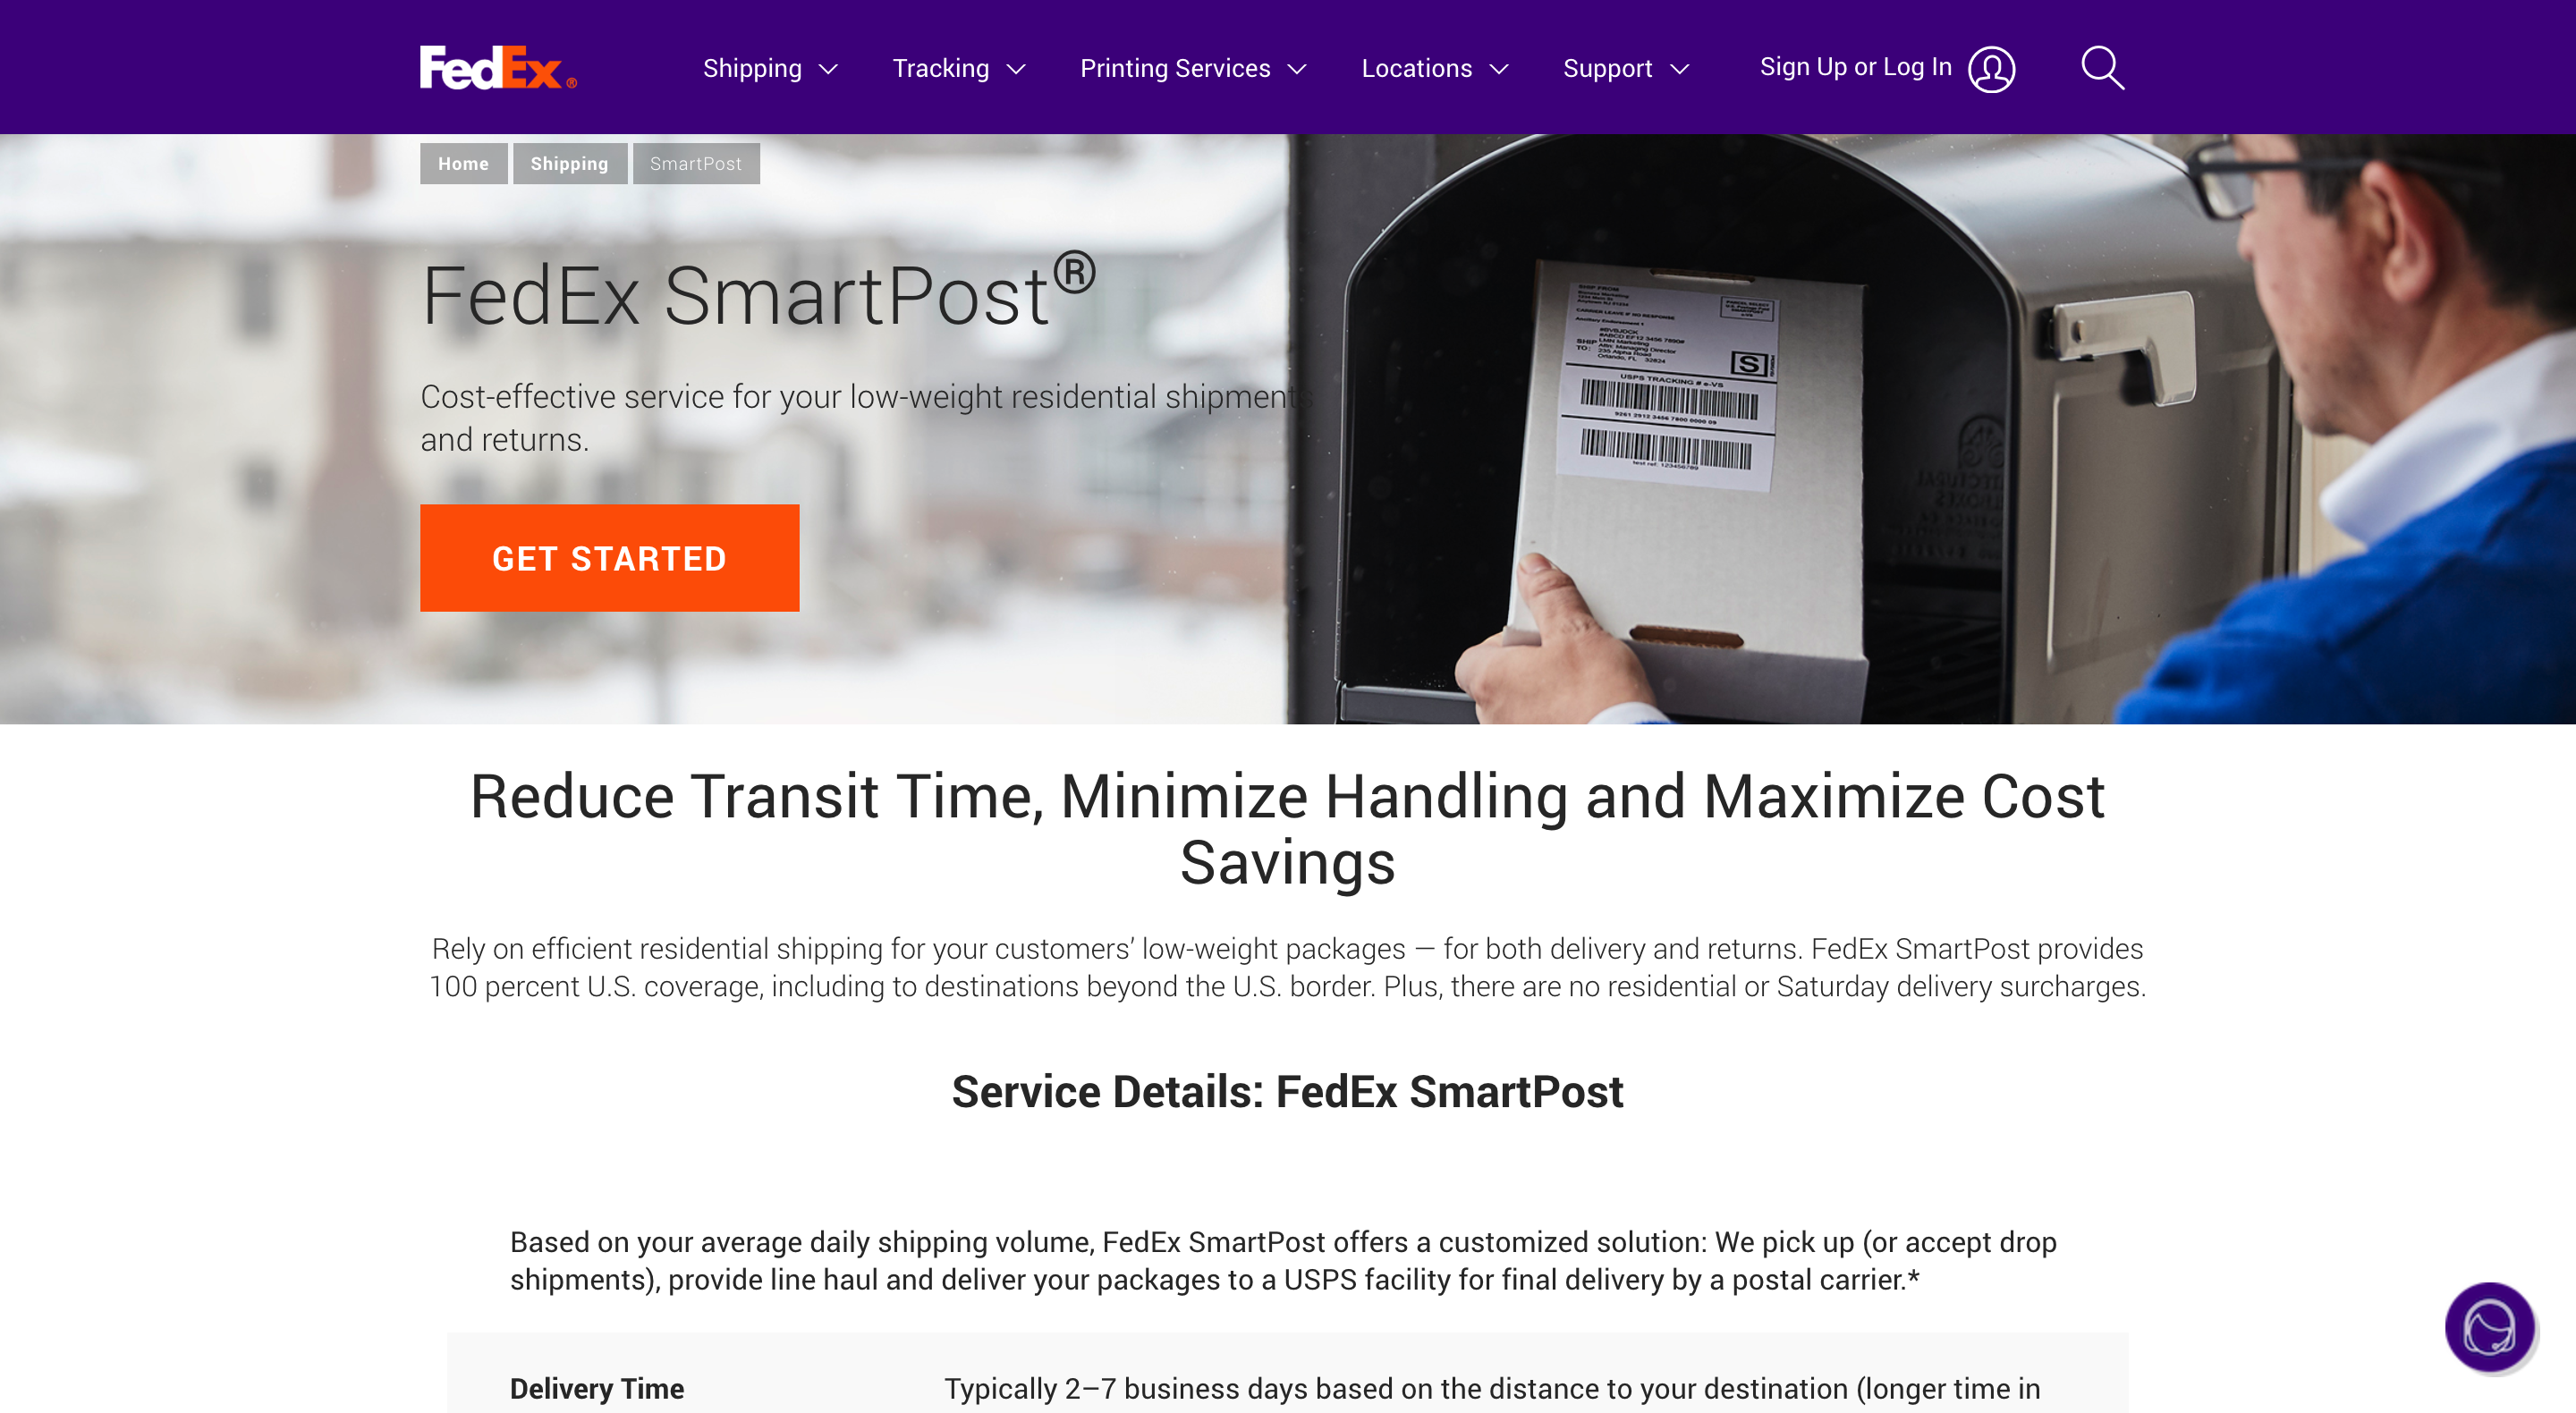 UPS SurePost or FedEx SmartPost-Which One to Choose for your